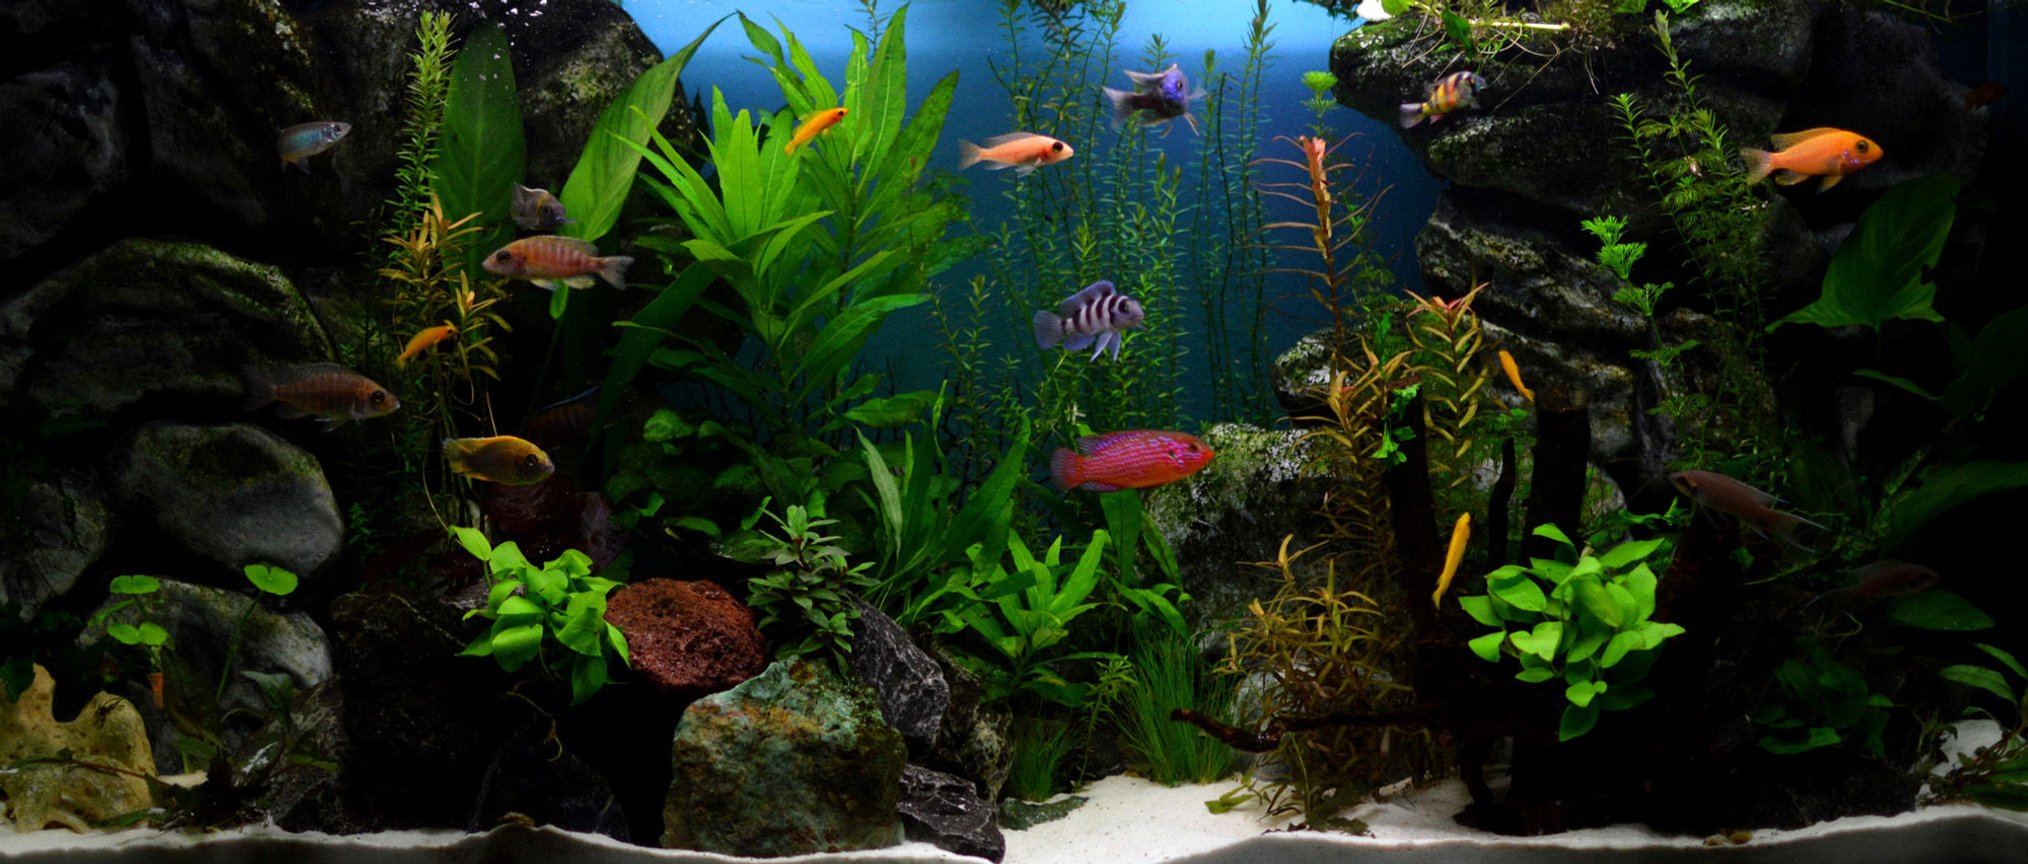 70 gallons planted tank (mostly live plants and fish) - Planted african cichlids tank Concept: healthy plants with the most colorful fish with character to rival marine aquariums